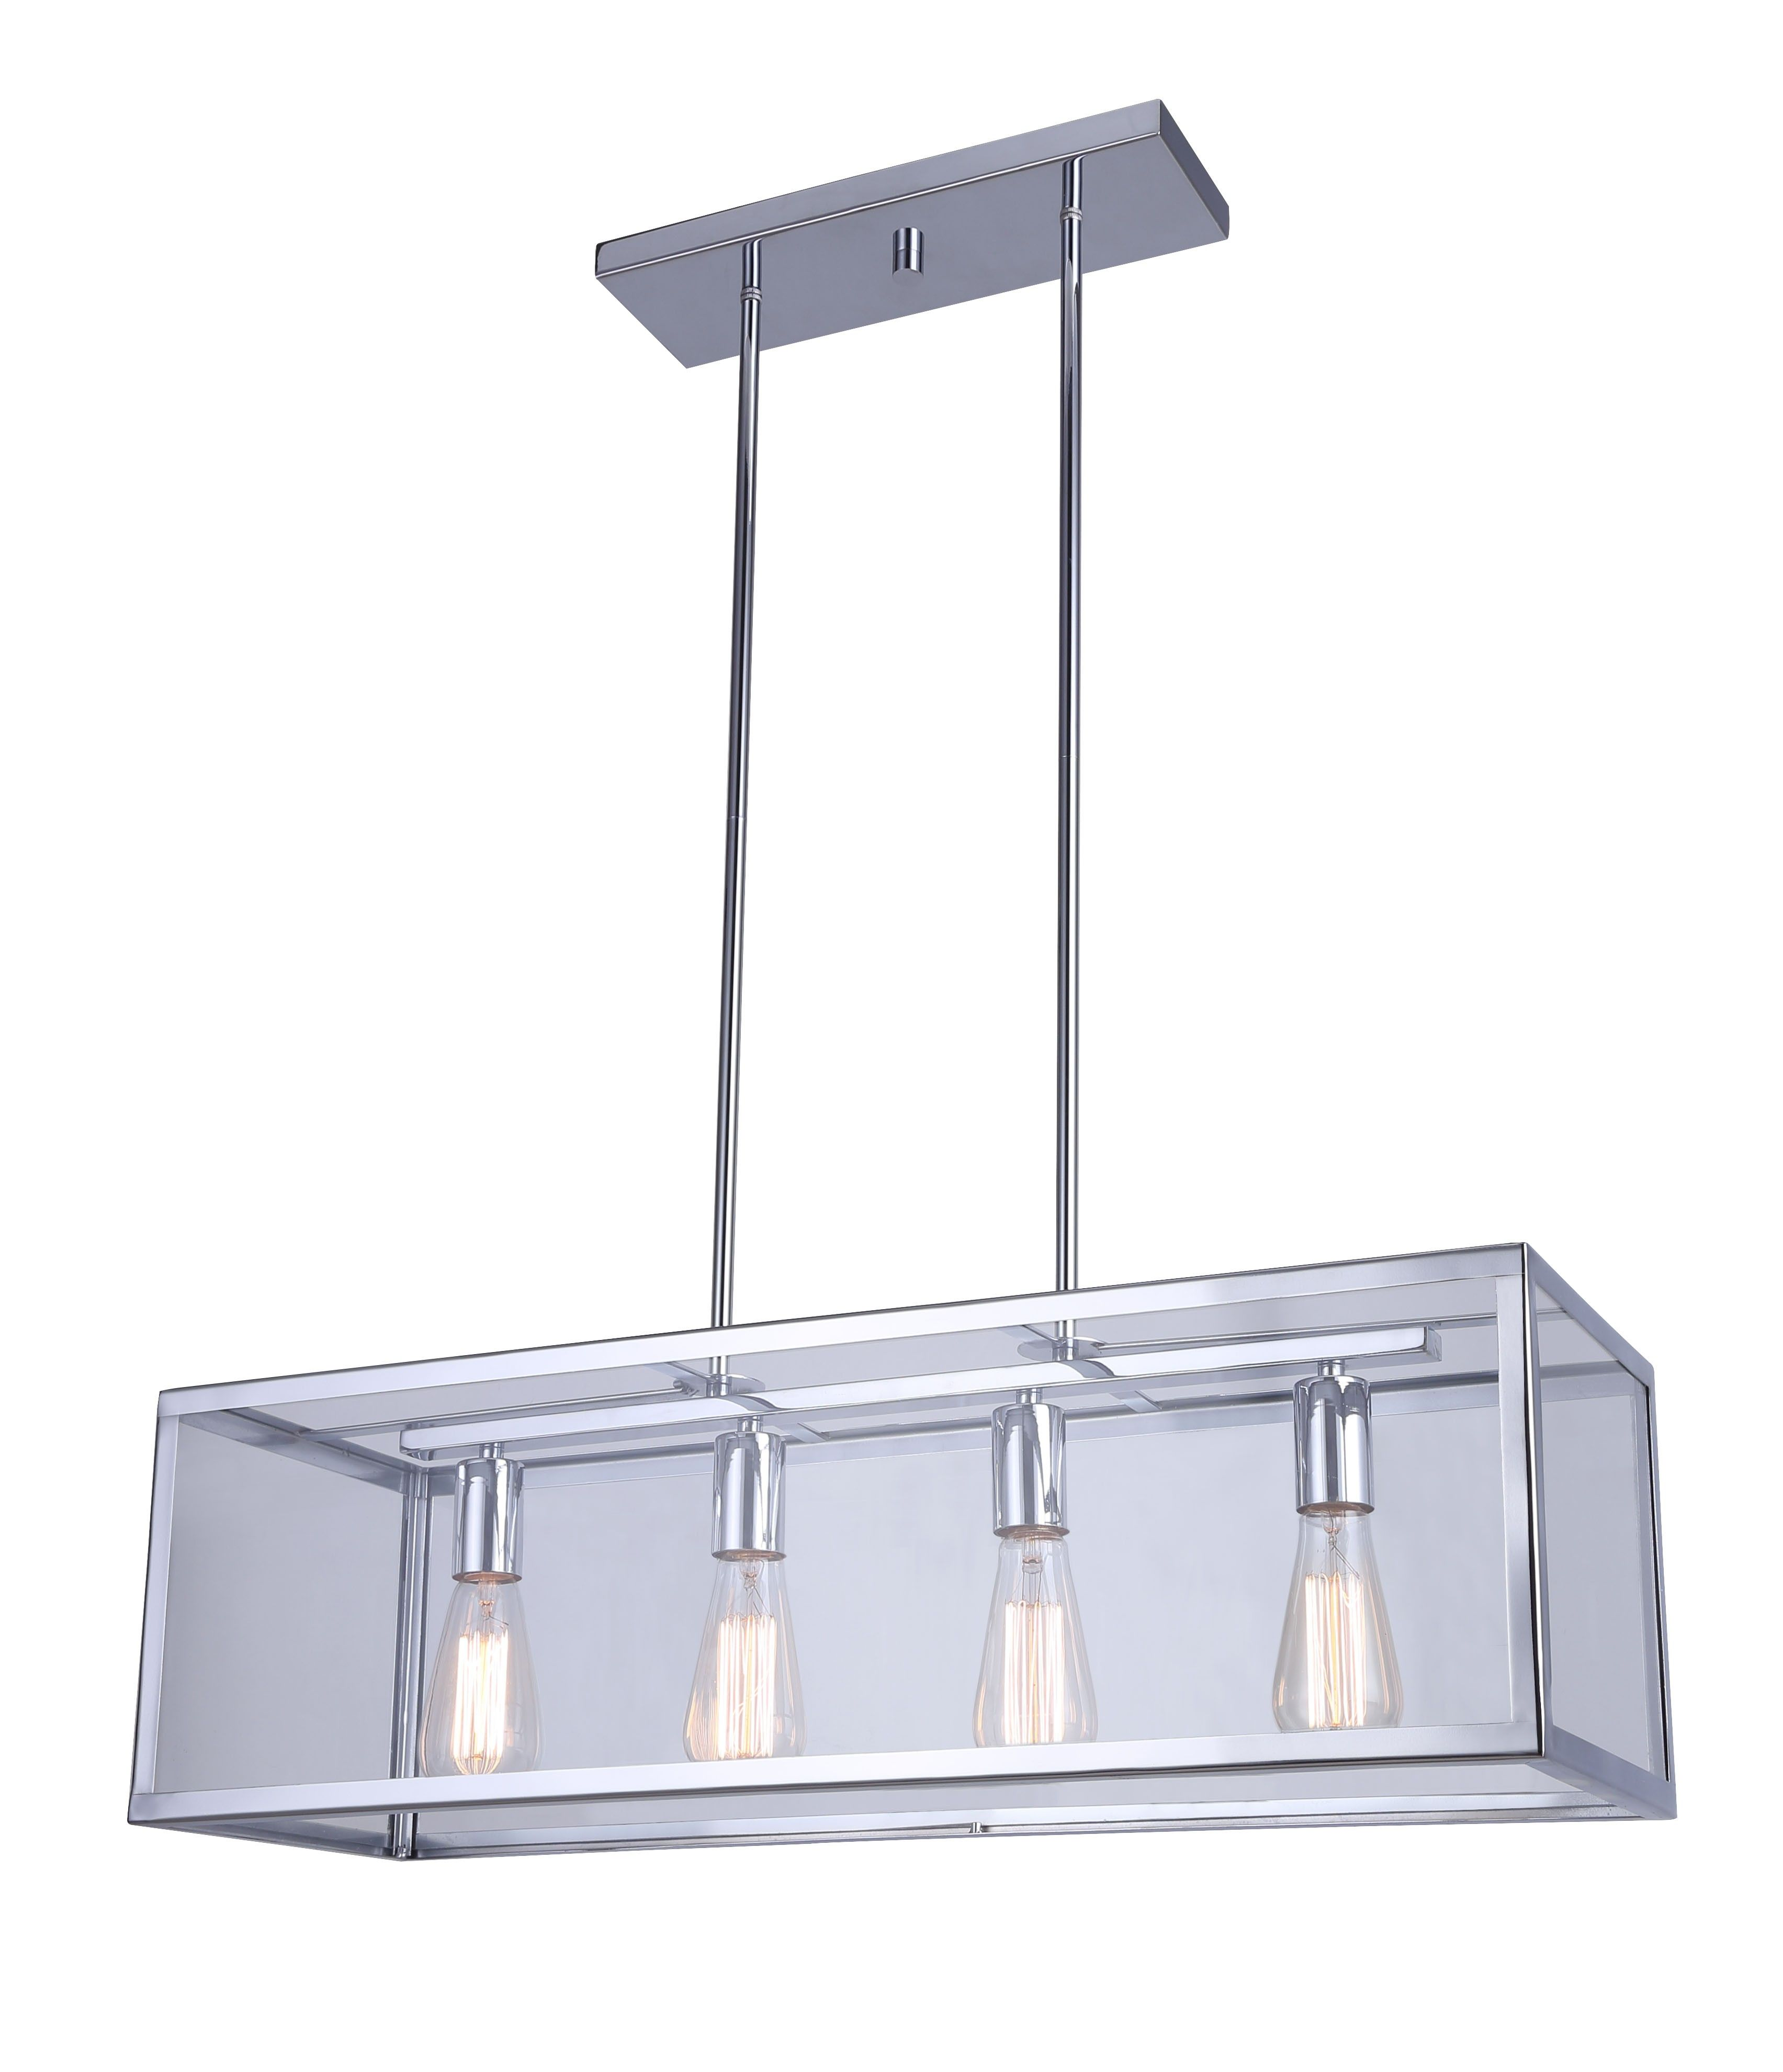 Canarm Ich530a04ch30 Langley 4 Light Rod Chandelier Chrome Discontinued No Longer Available Exterior Light Fixtures Industrial Light Fixtures Chandelier Ceiling Lights